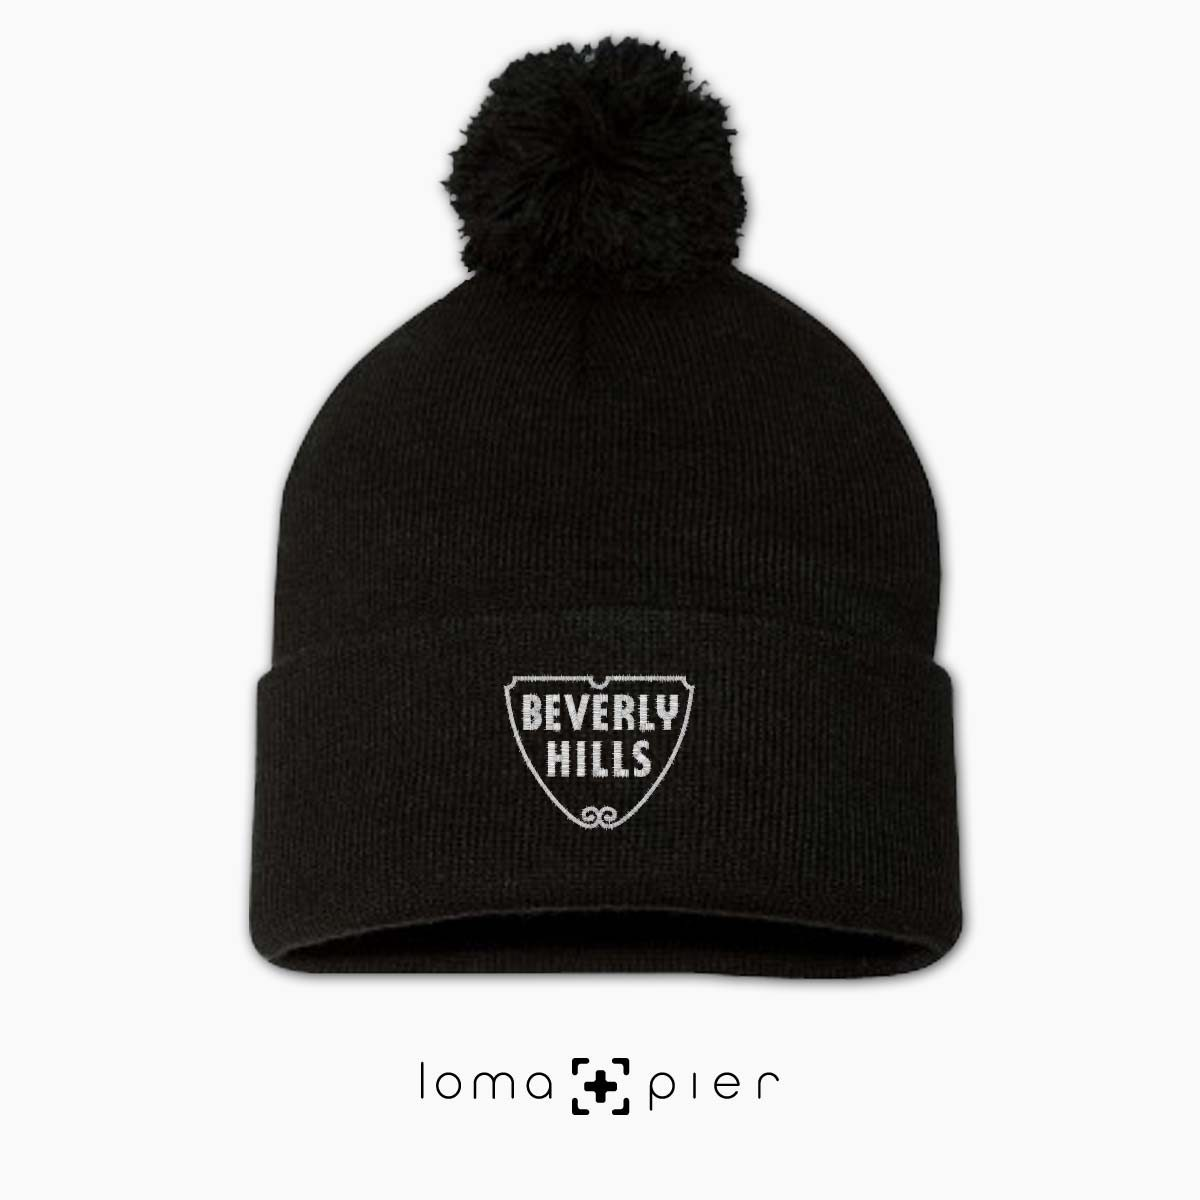 BEVERLY HILLS typography embroidered on a black pom pom beanie with white thread by loma+pier hat store